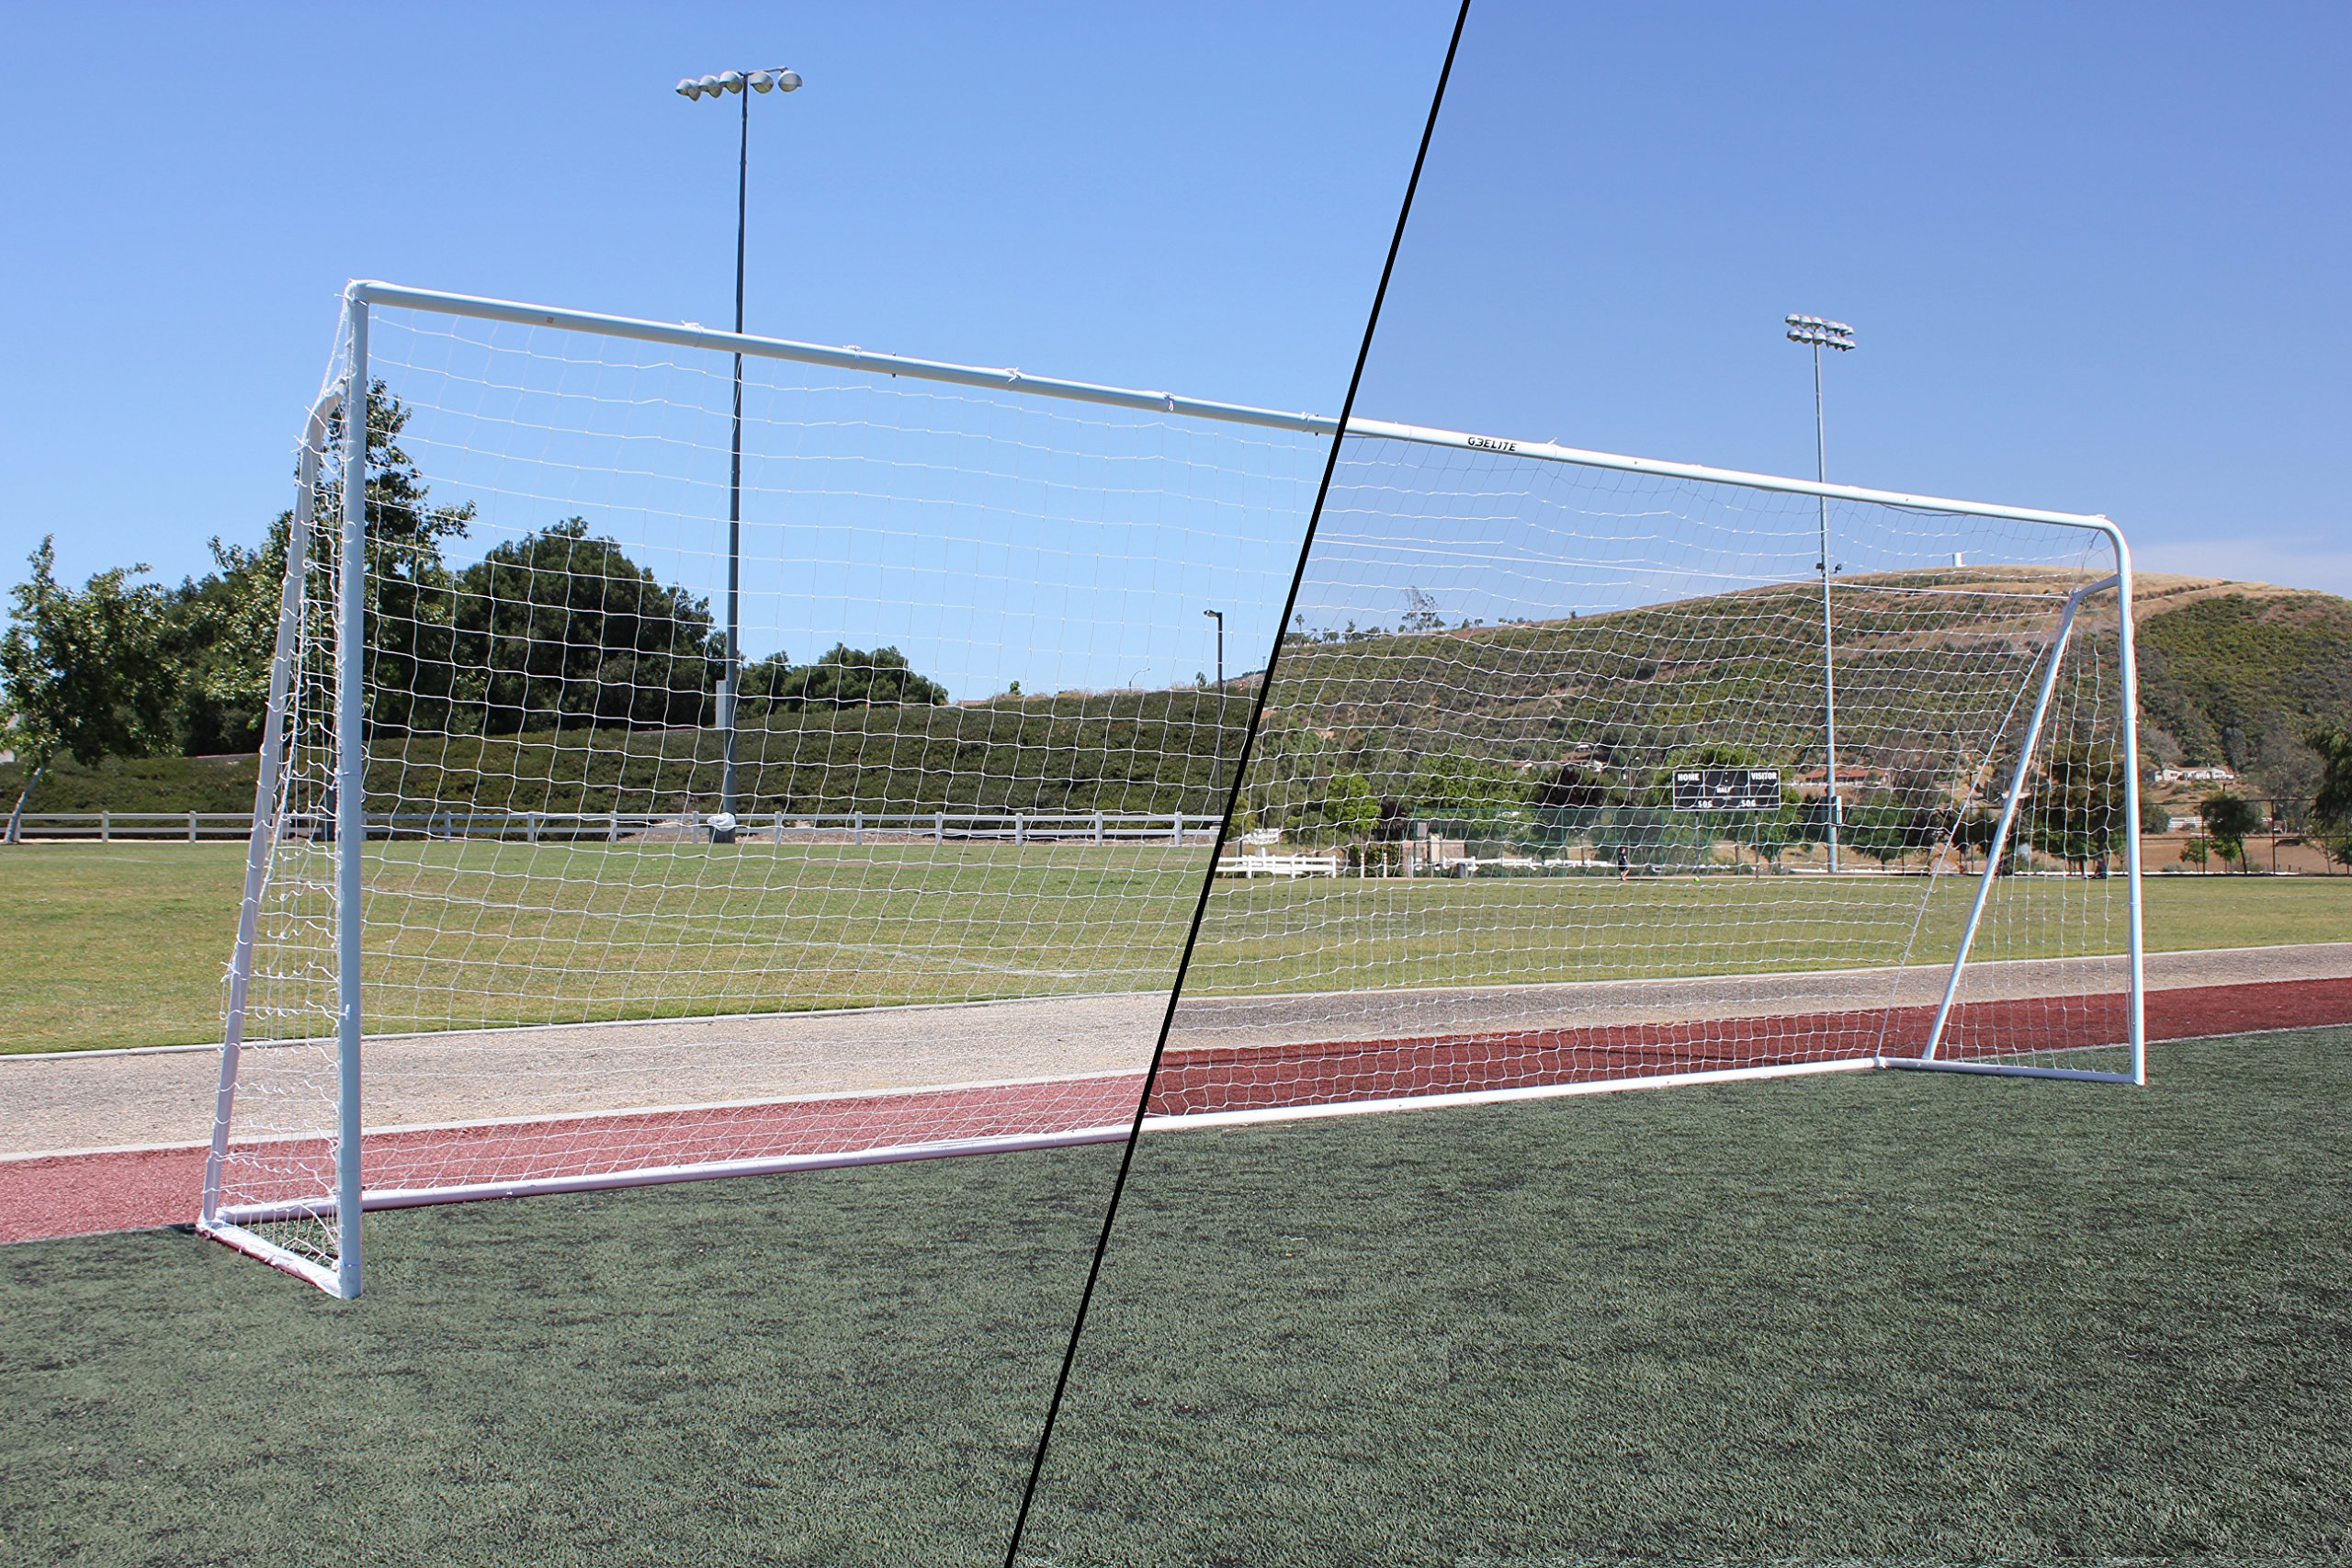 G3Elite Value 24x8 Regulation Soccer Goal (Discounted Less Than Perfect Item), (1) Net, Strongest Portable Steel Post Design, 8'x24'x1'x4½'